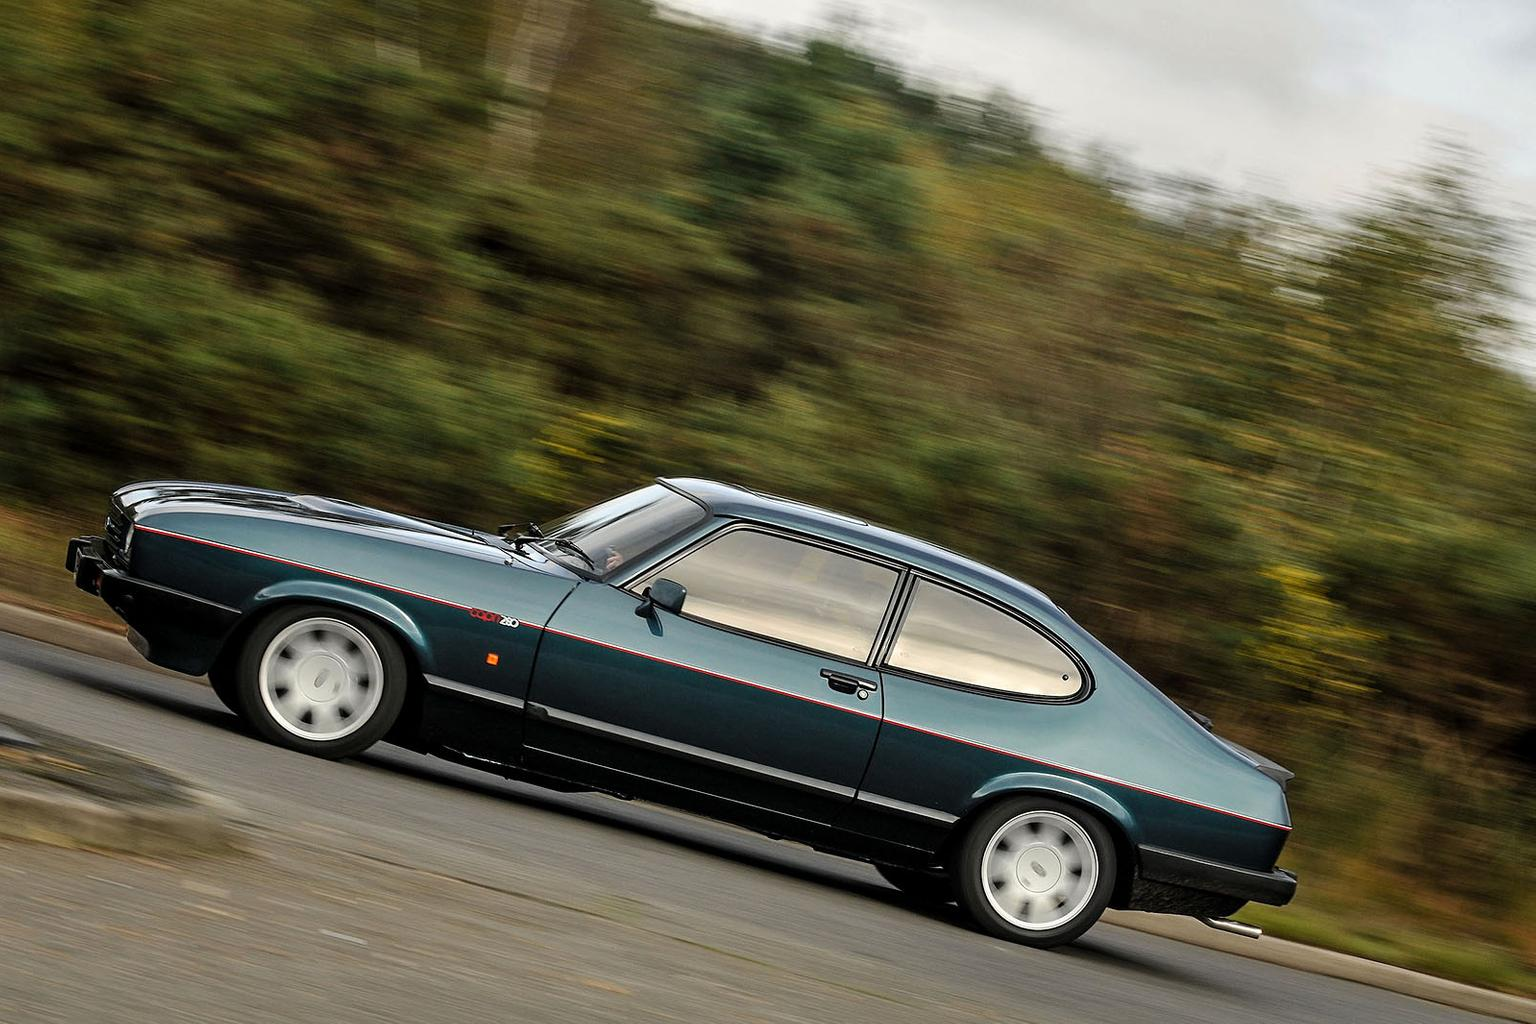 Ford Capri 2.8i – Rewind Wednesday